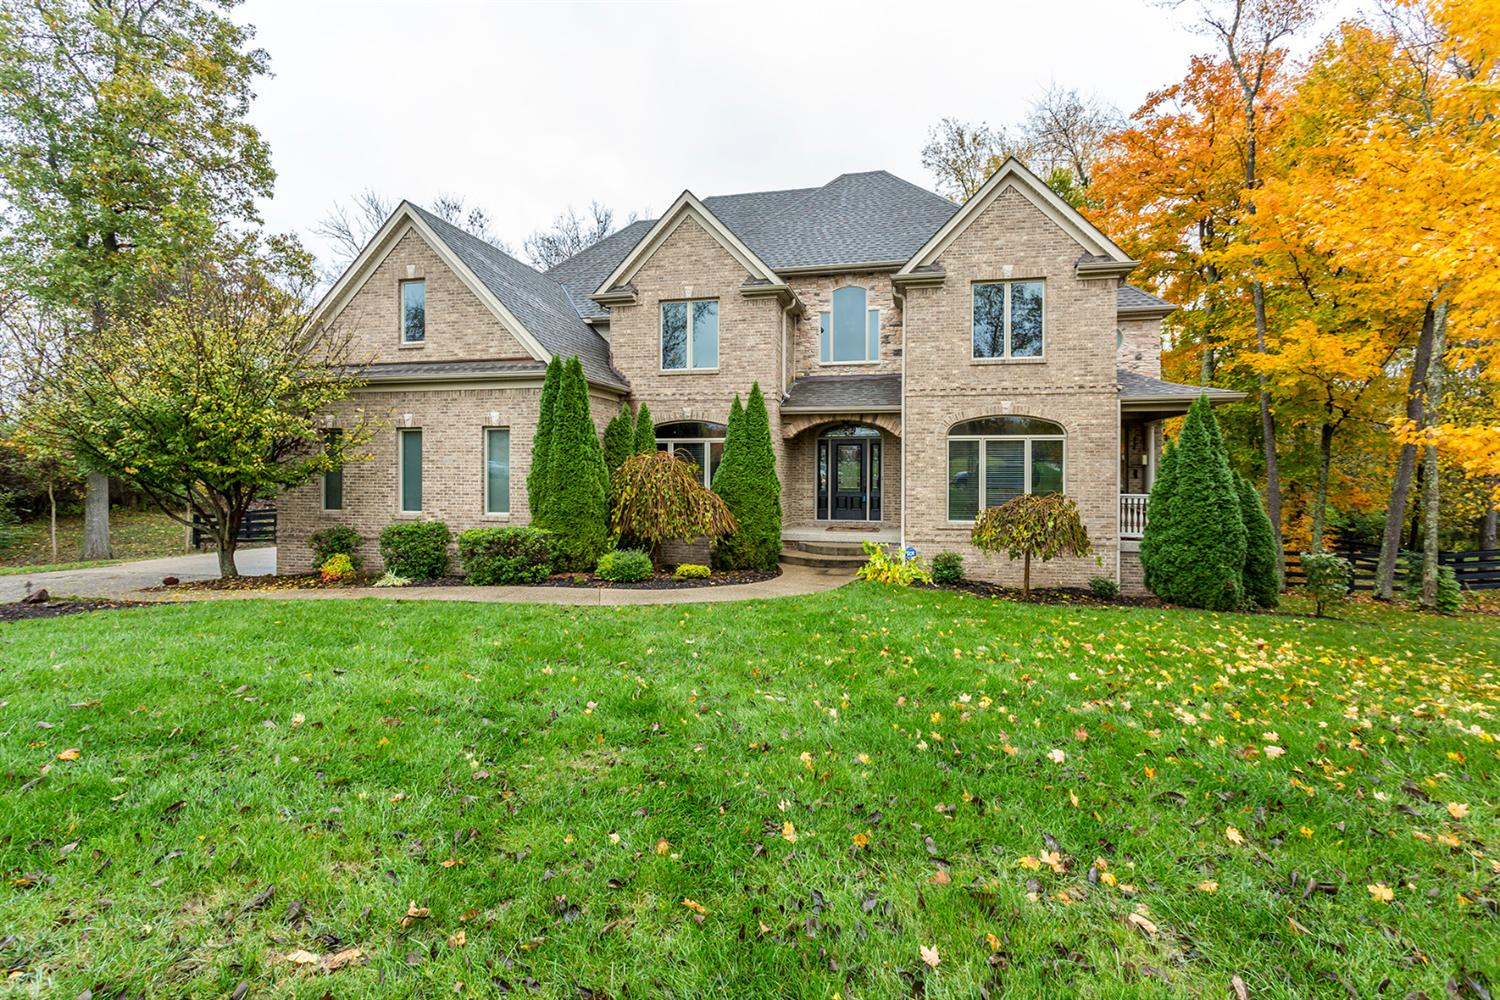 206%20Deerfield%20Cir%20Nicholasville,%20KY%2040356Barkley%20Woods